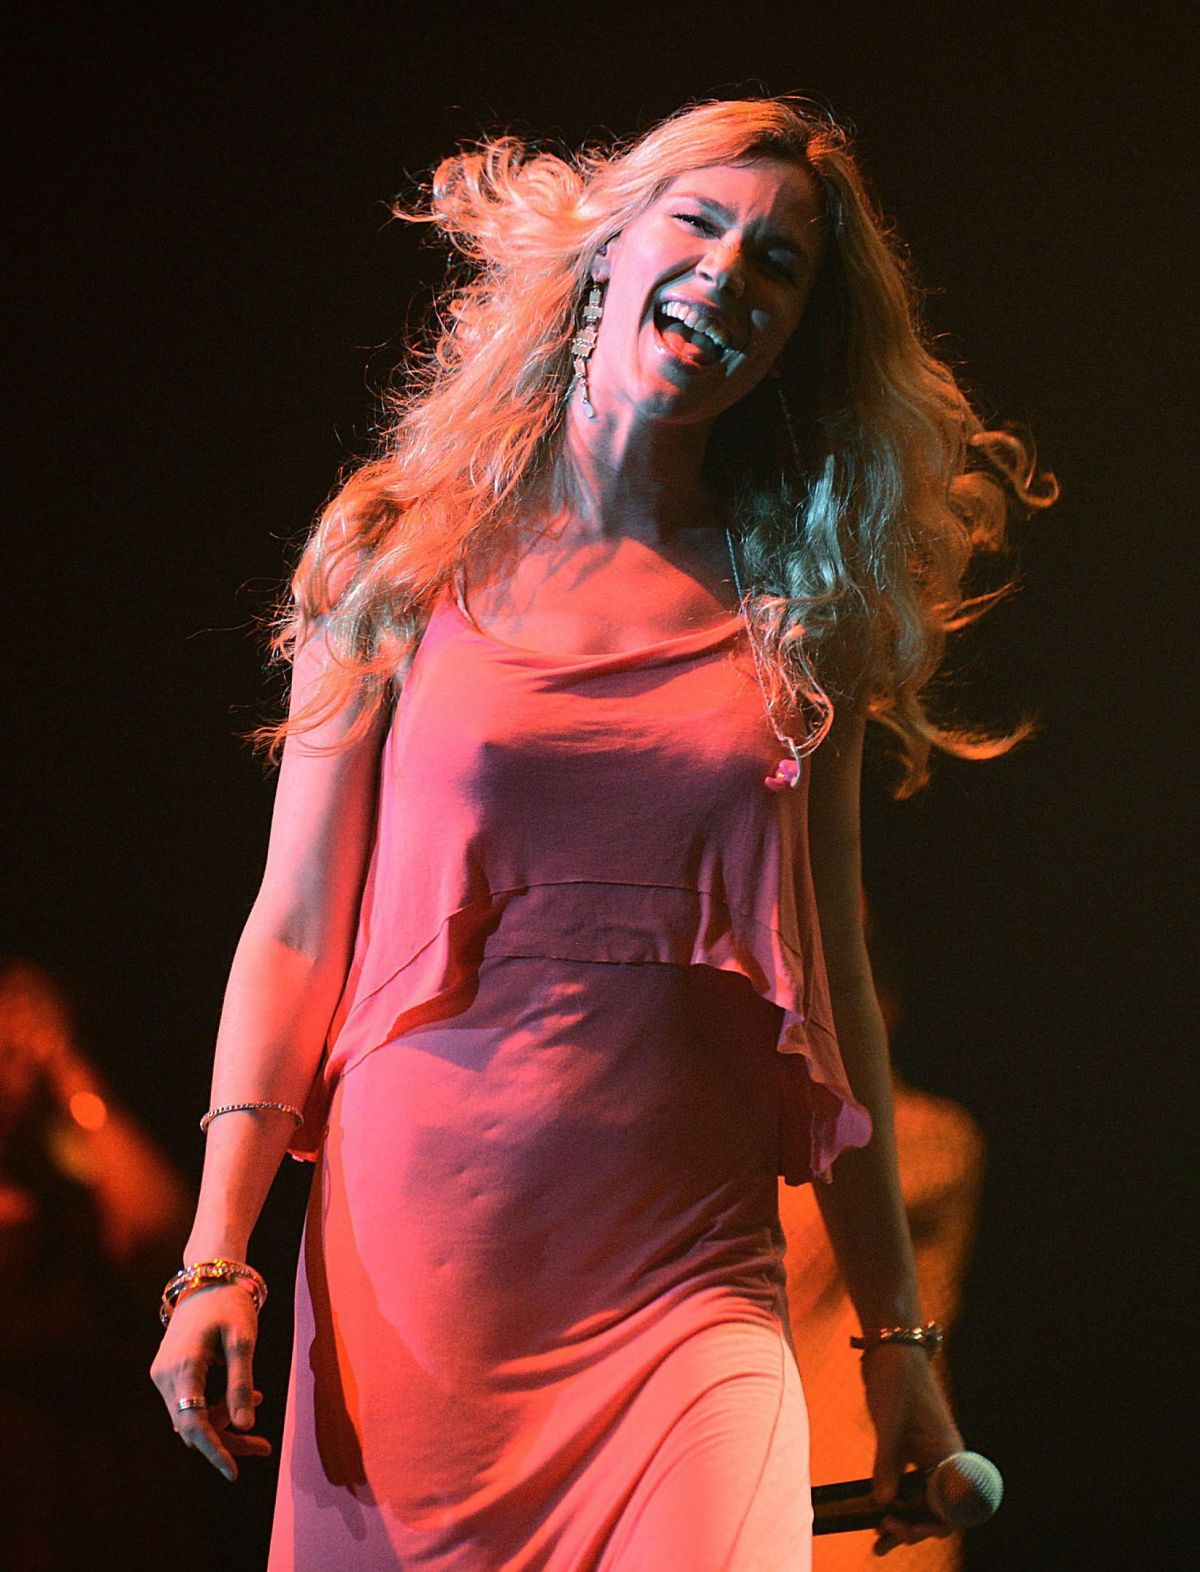 JOSS STONE Performs at a Concert in Johannesburg